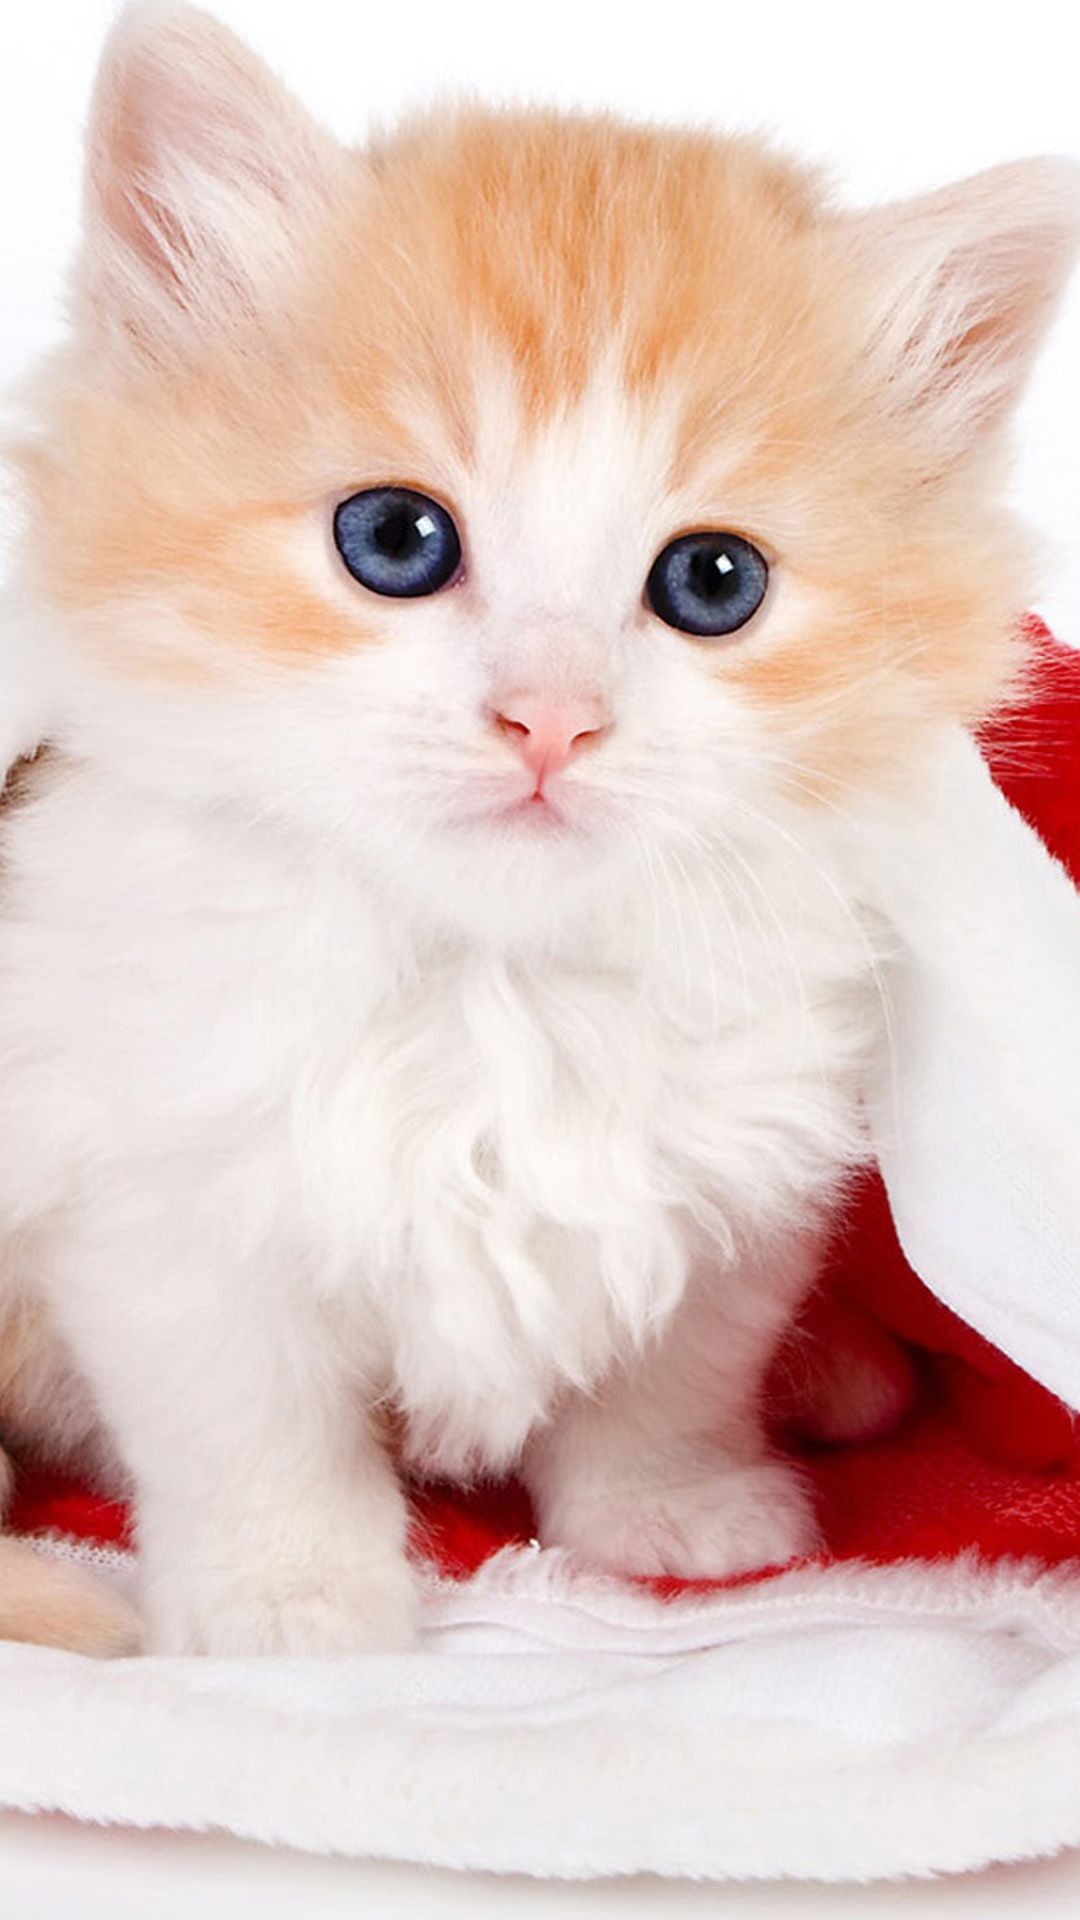 Wallpaper iphone cute cat - Cute Lovely Christmas Hat Kitten Iphone 6 Plus Wallpaper